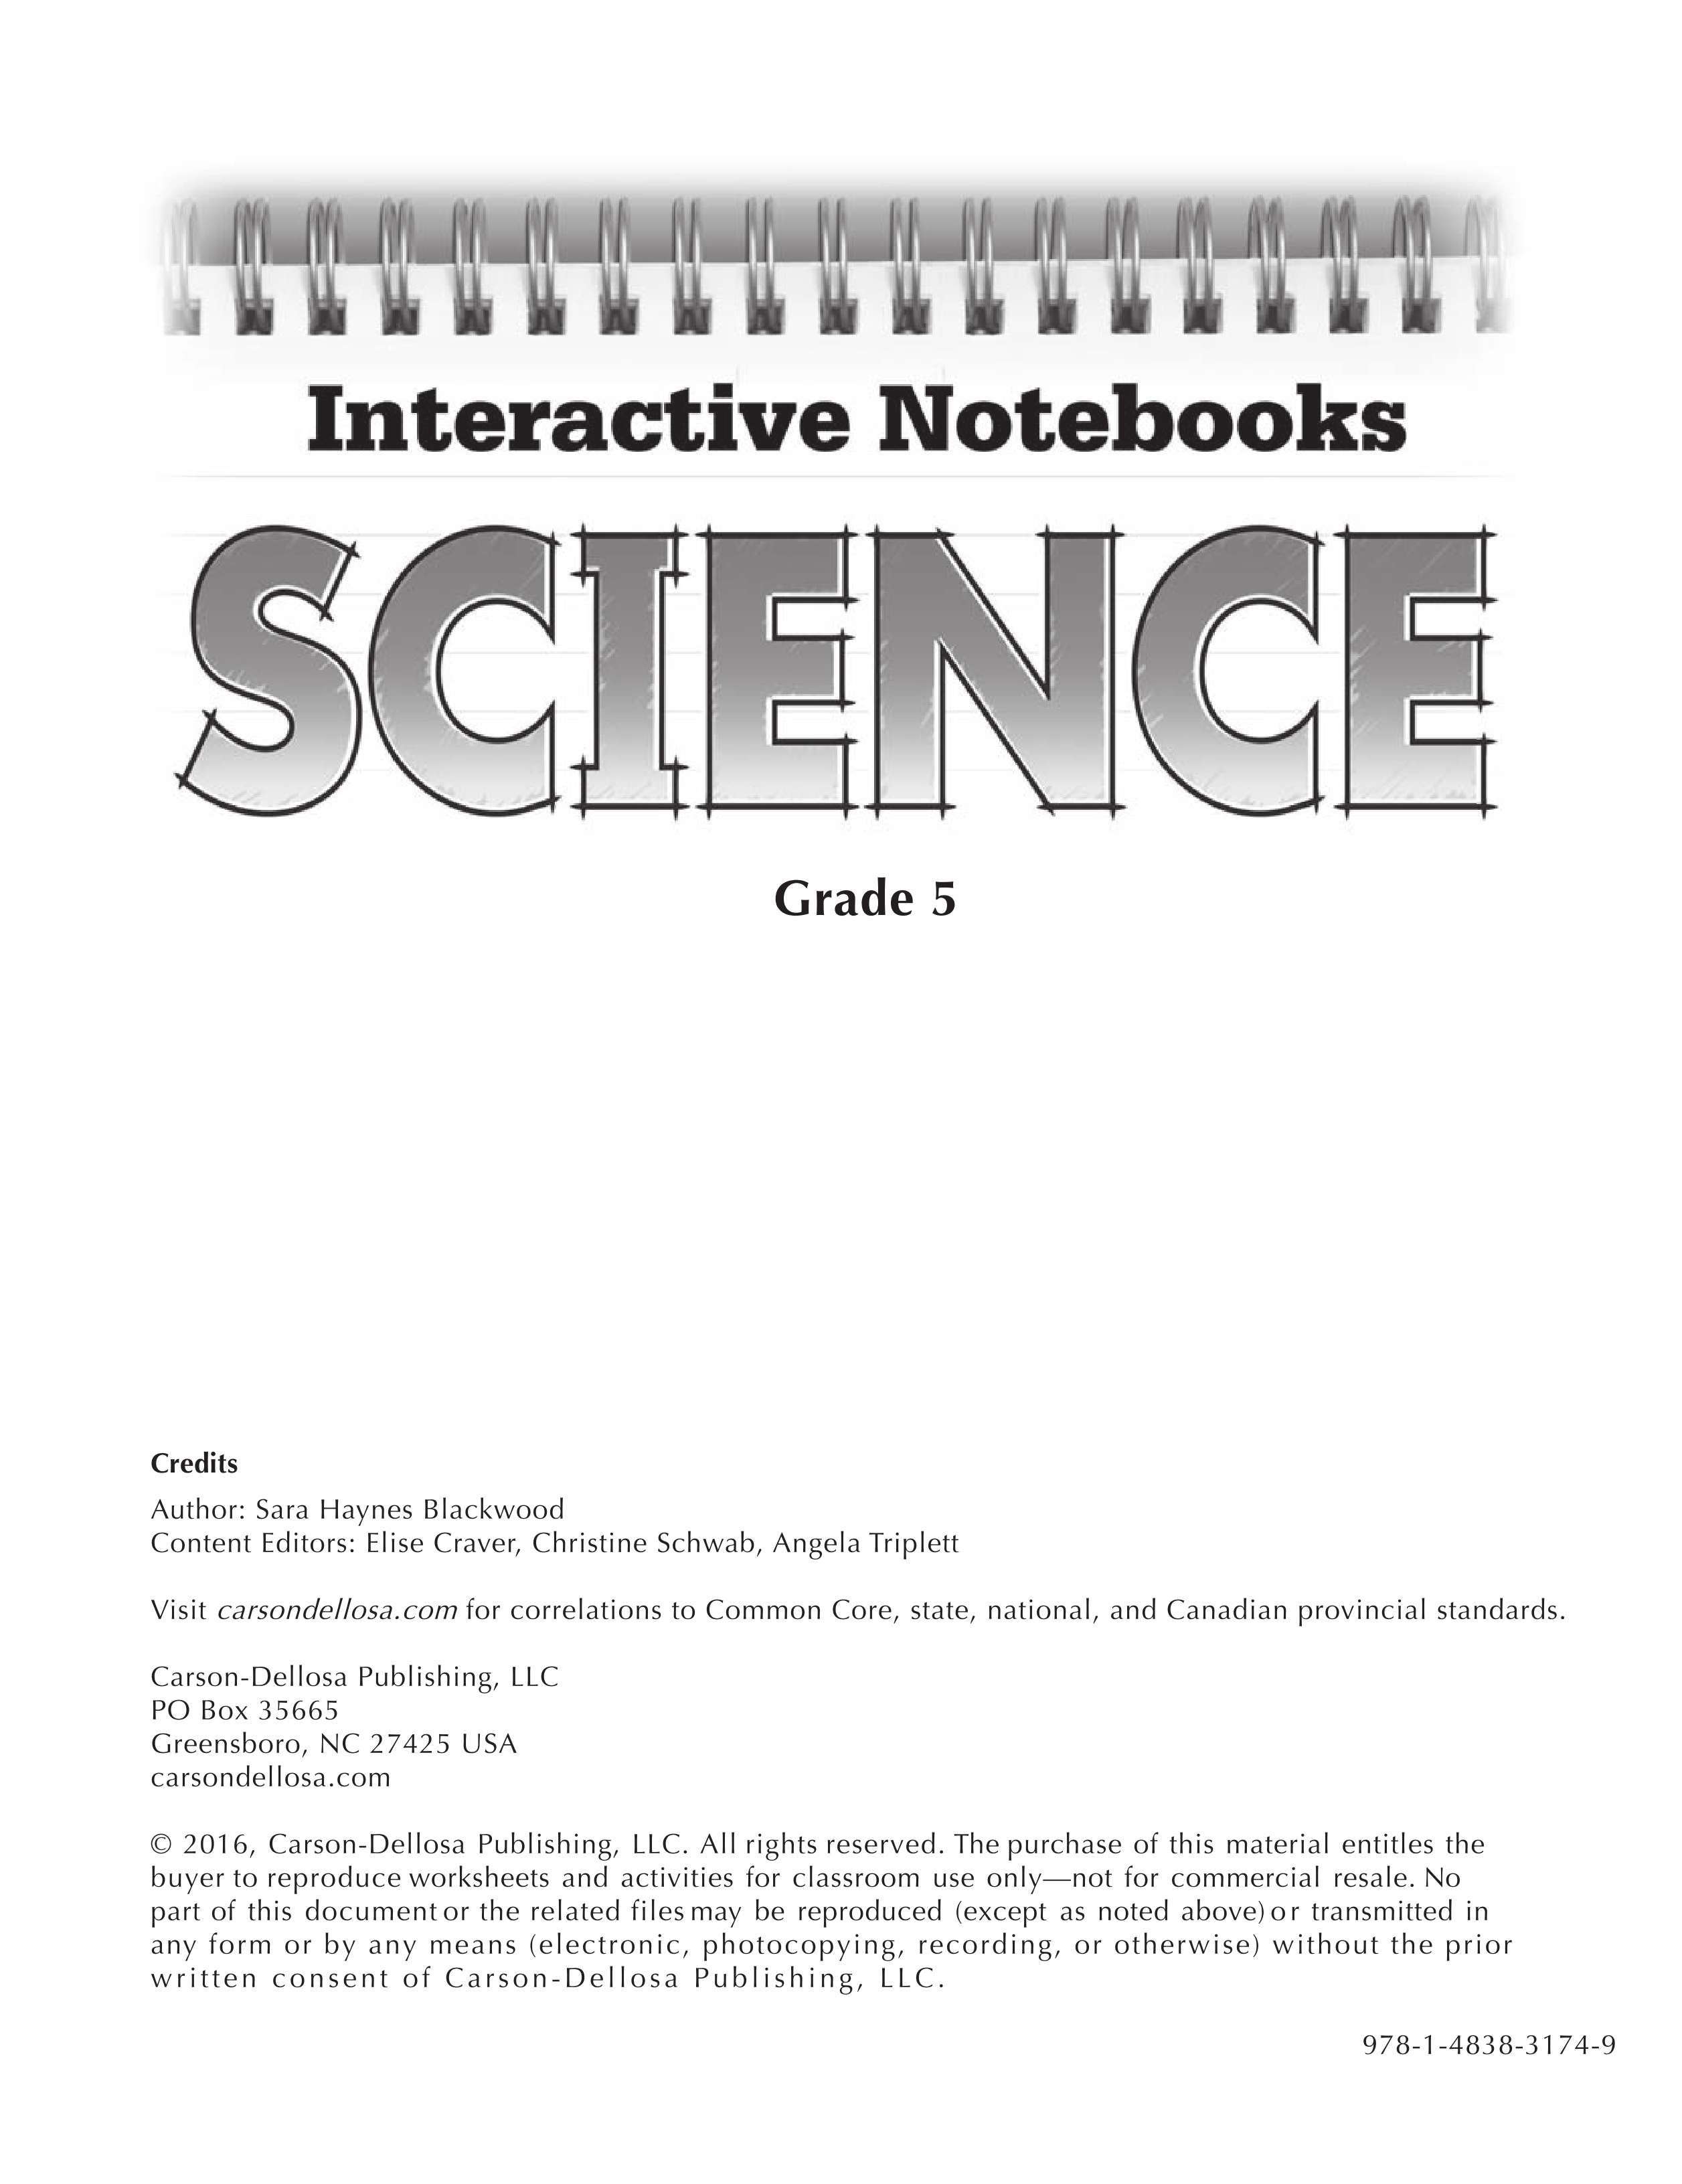 Carson Dellosa Publishing Science notebooks